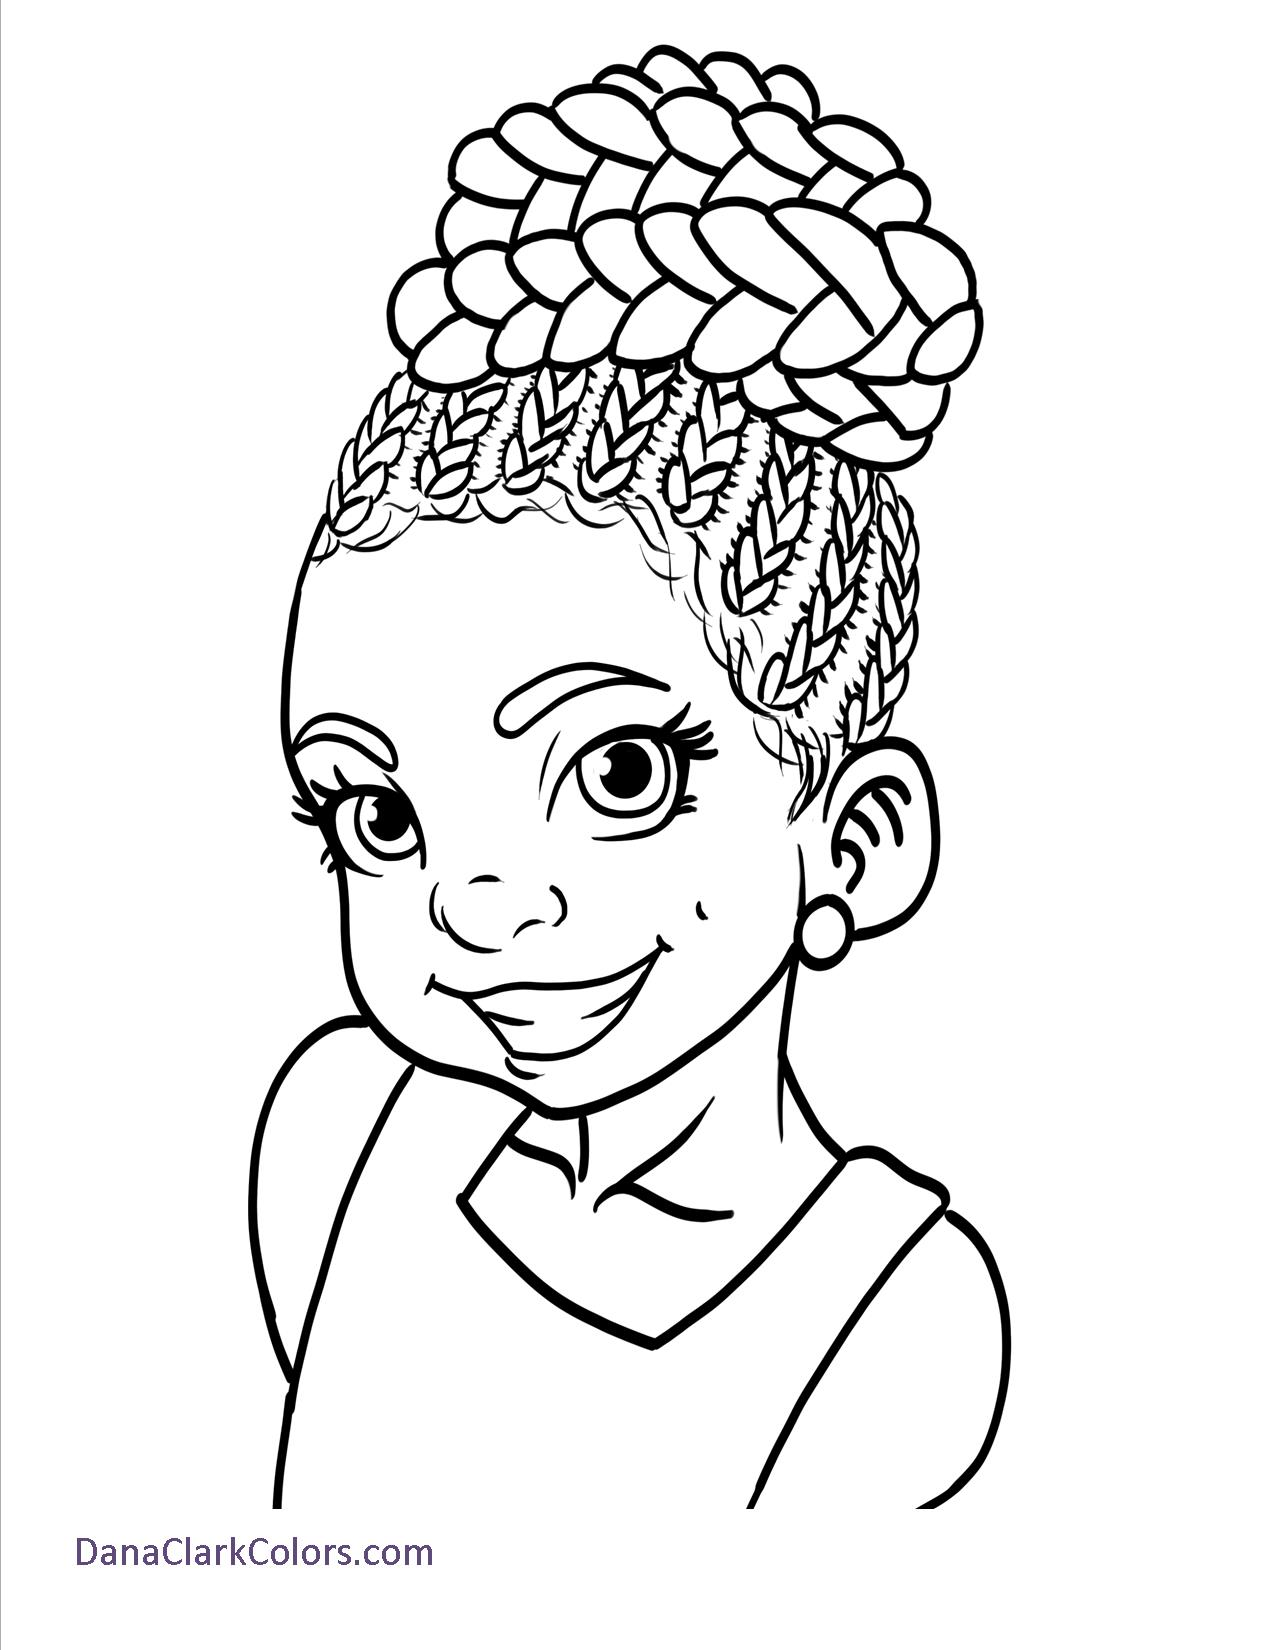 Free Coloring Pages Danaclarkcolors Com Black Coloring Pages